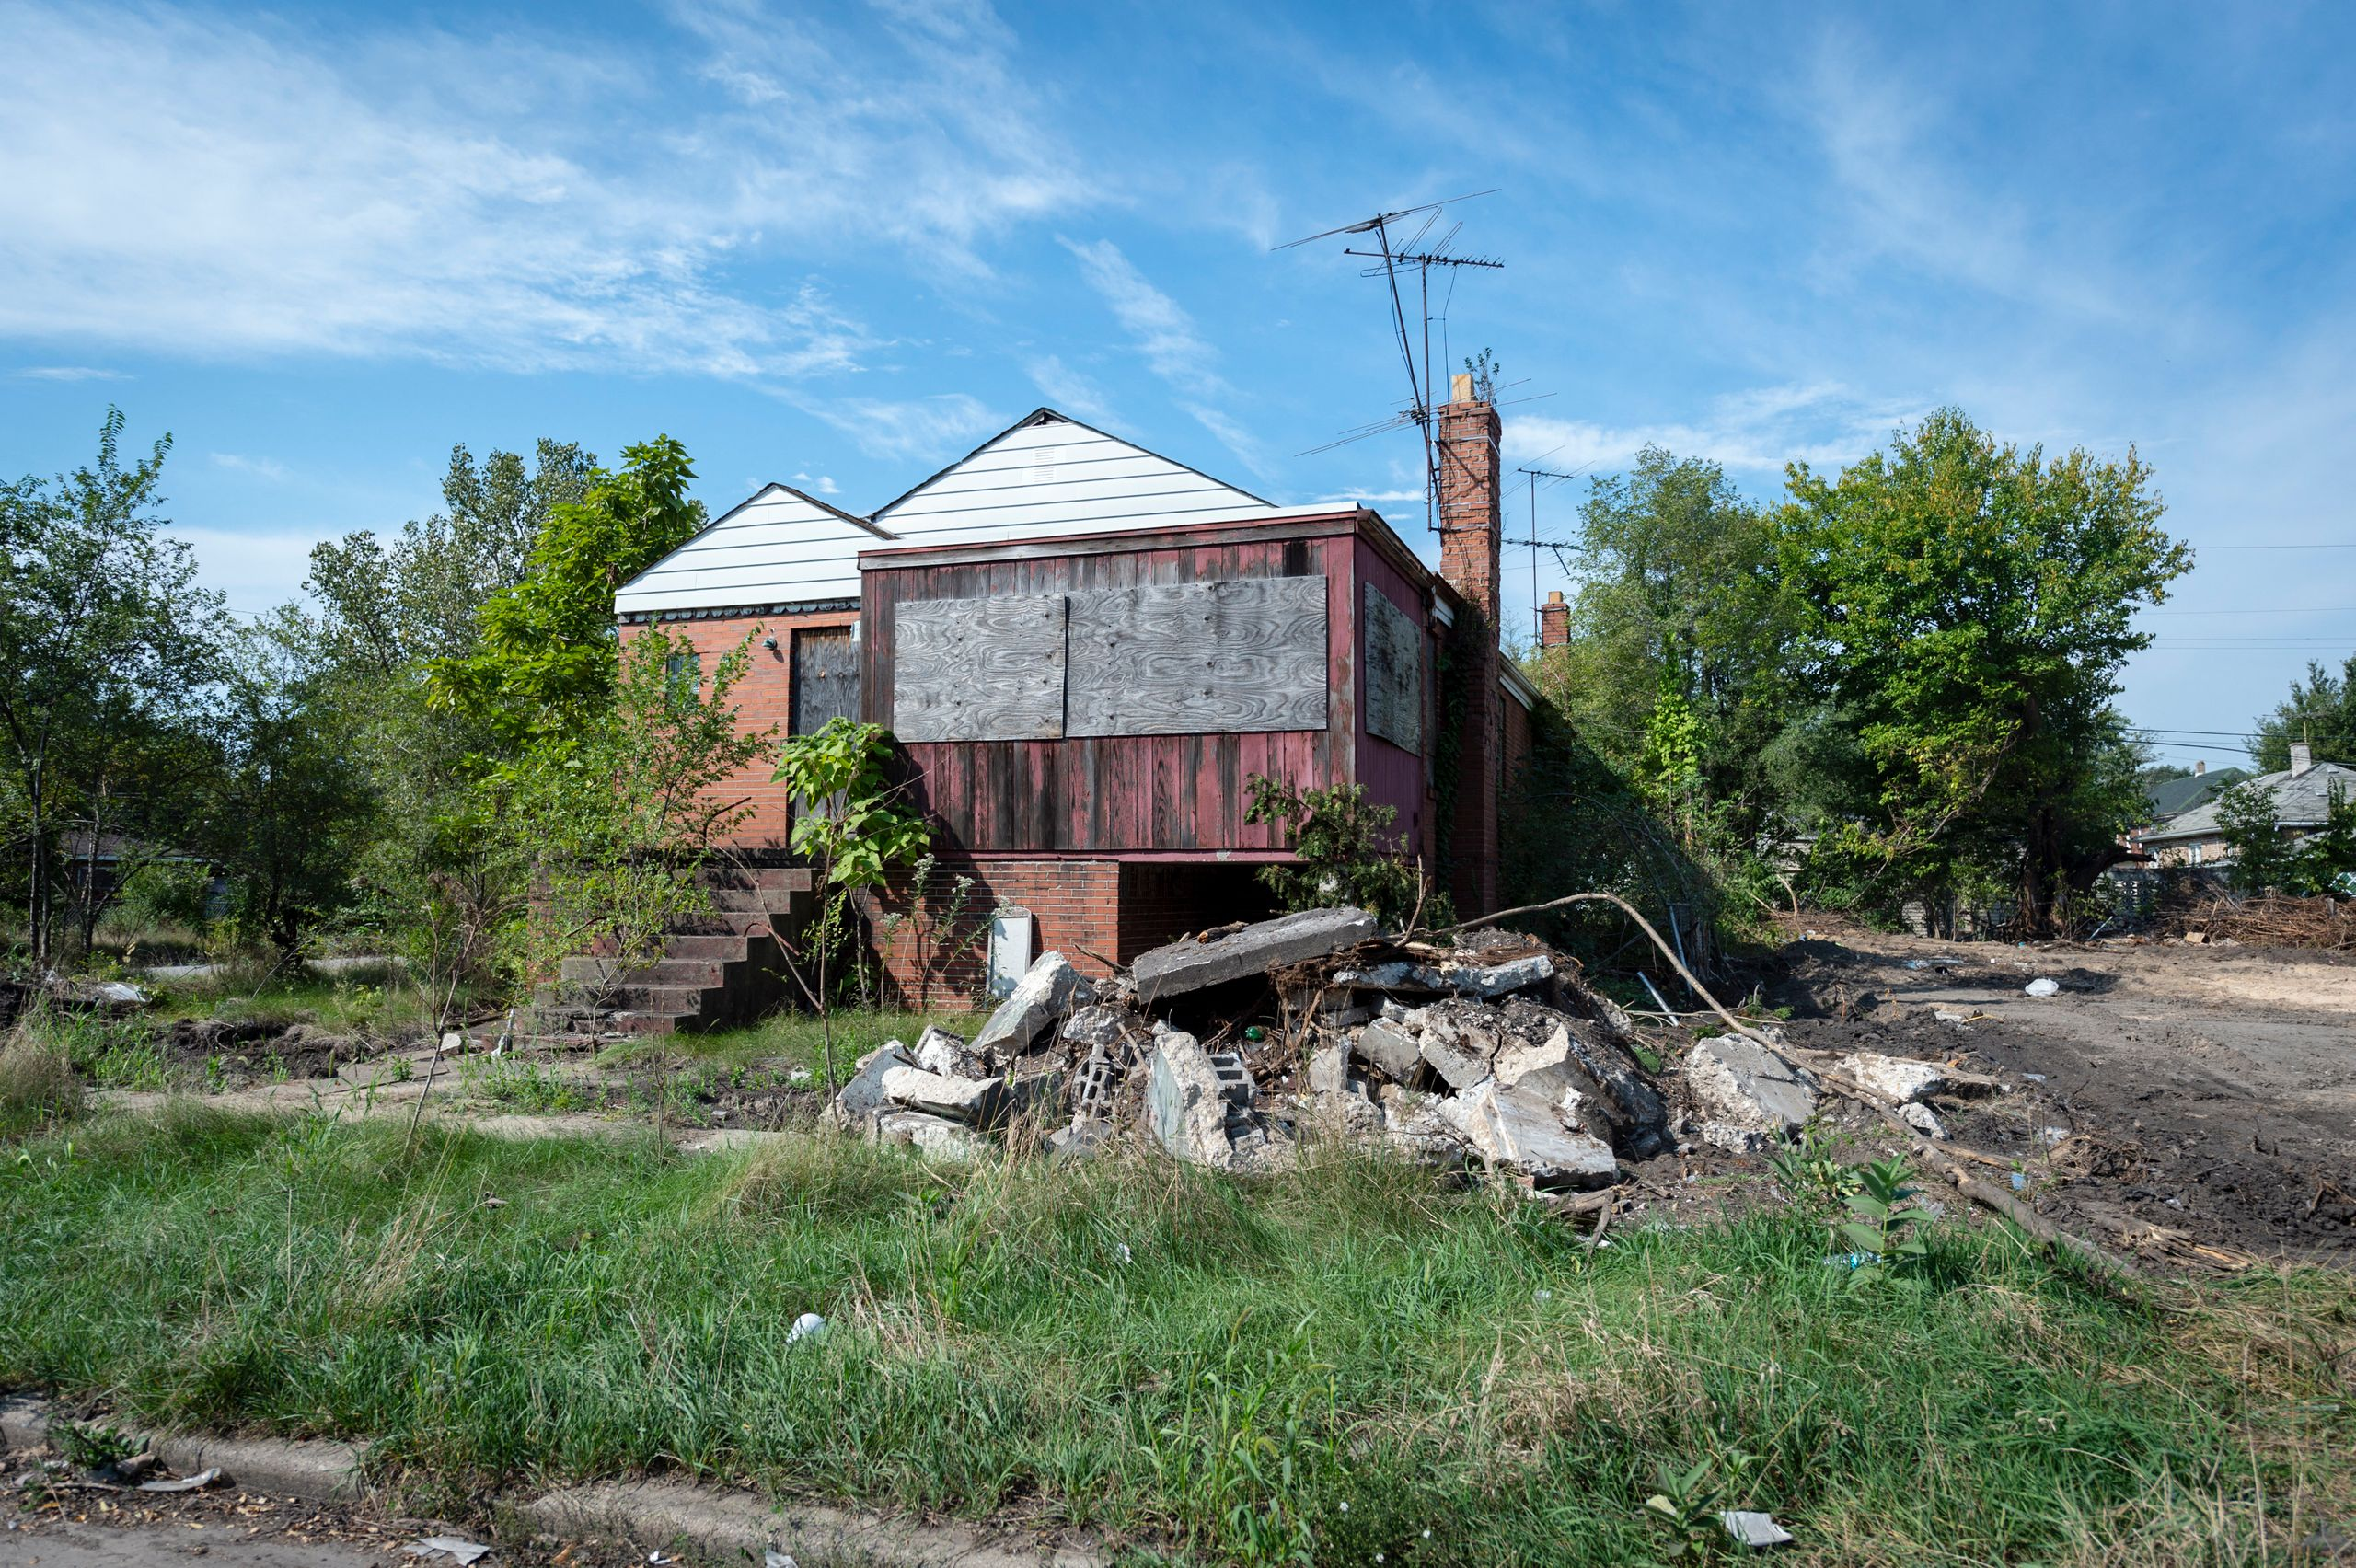 Many homes like this have been abandoned within the city.